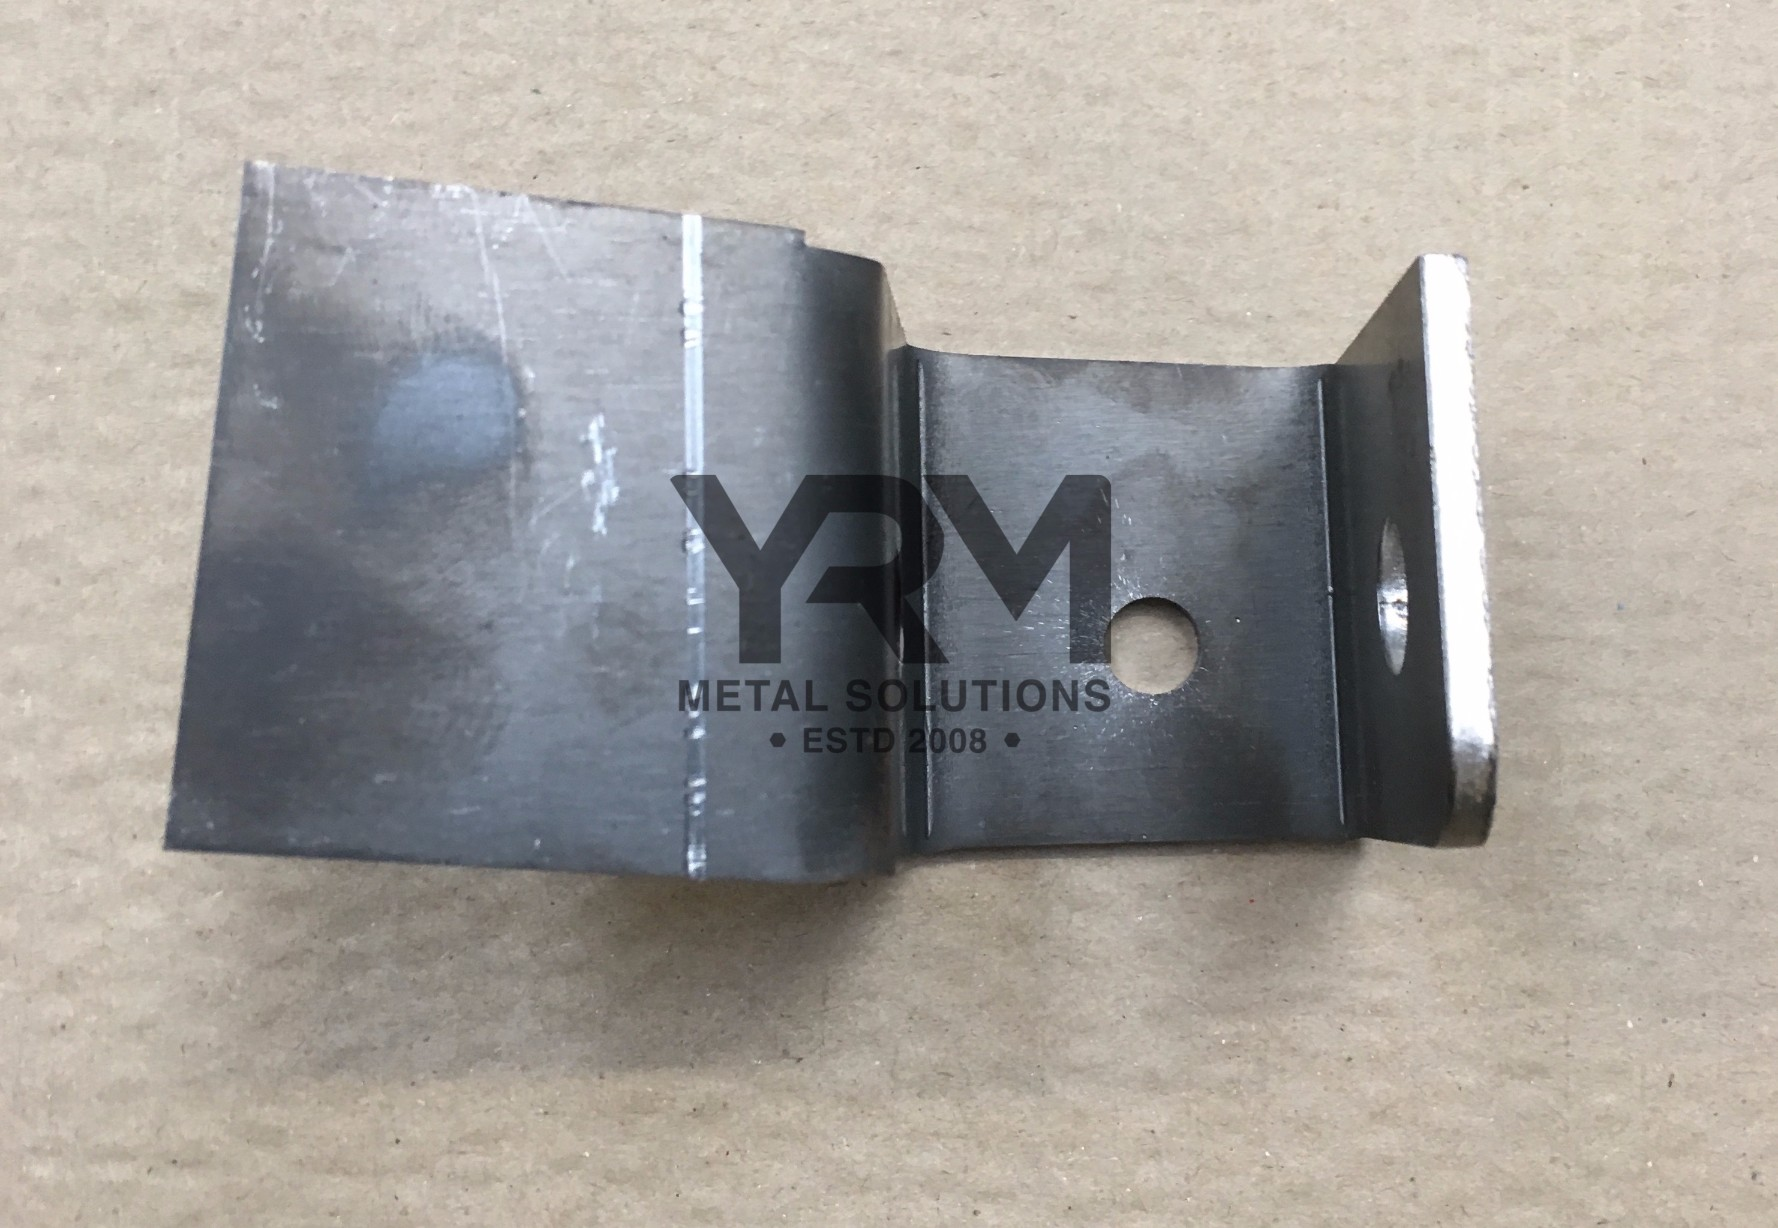 Lhs Front Axle Panhard Yrm Metal Solutions